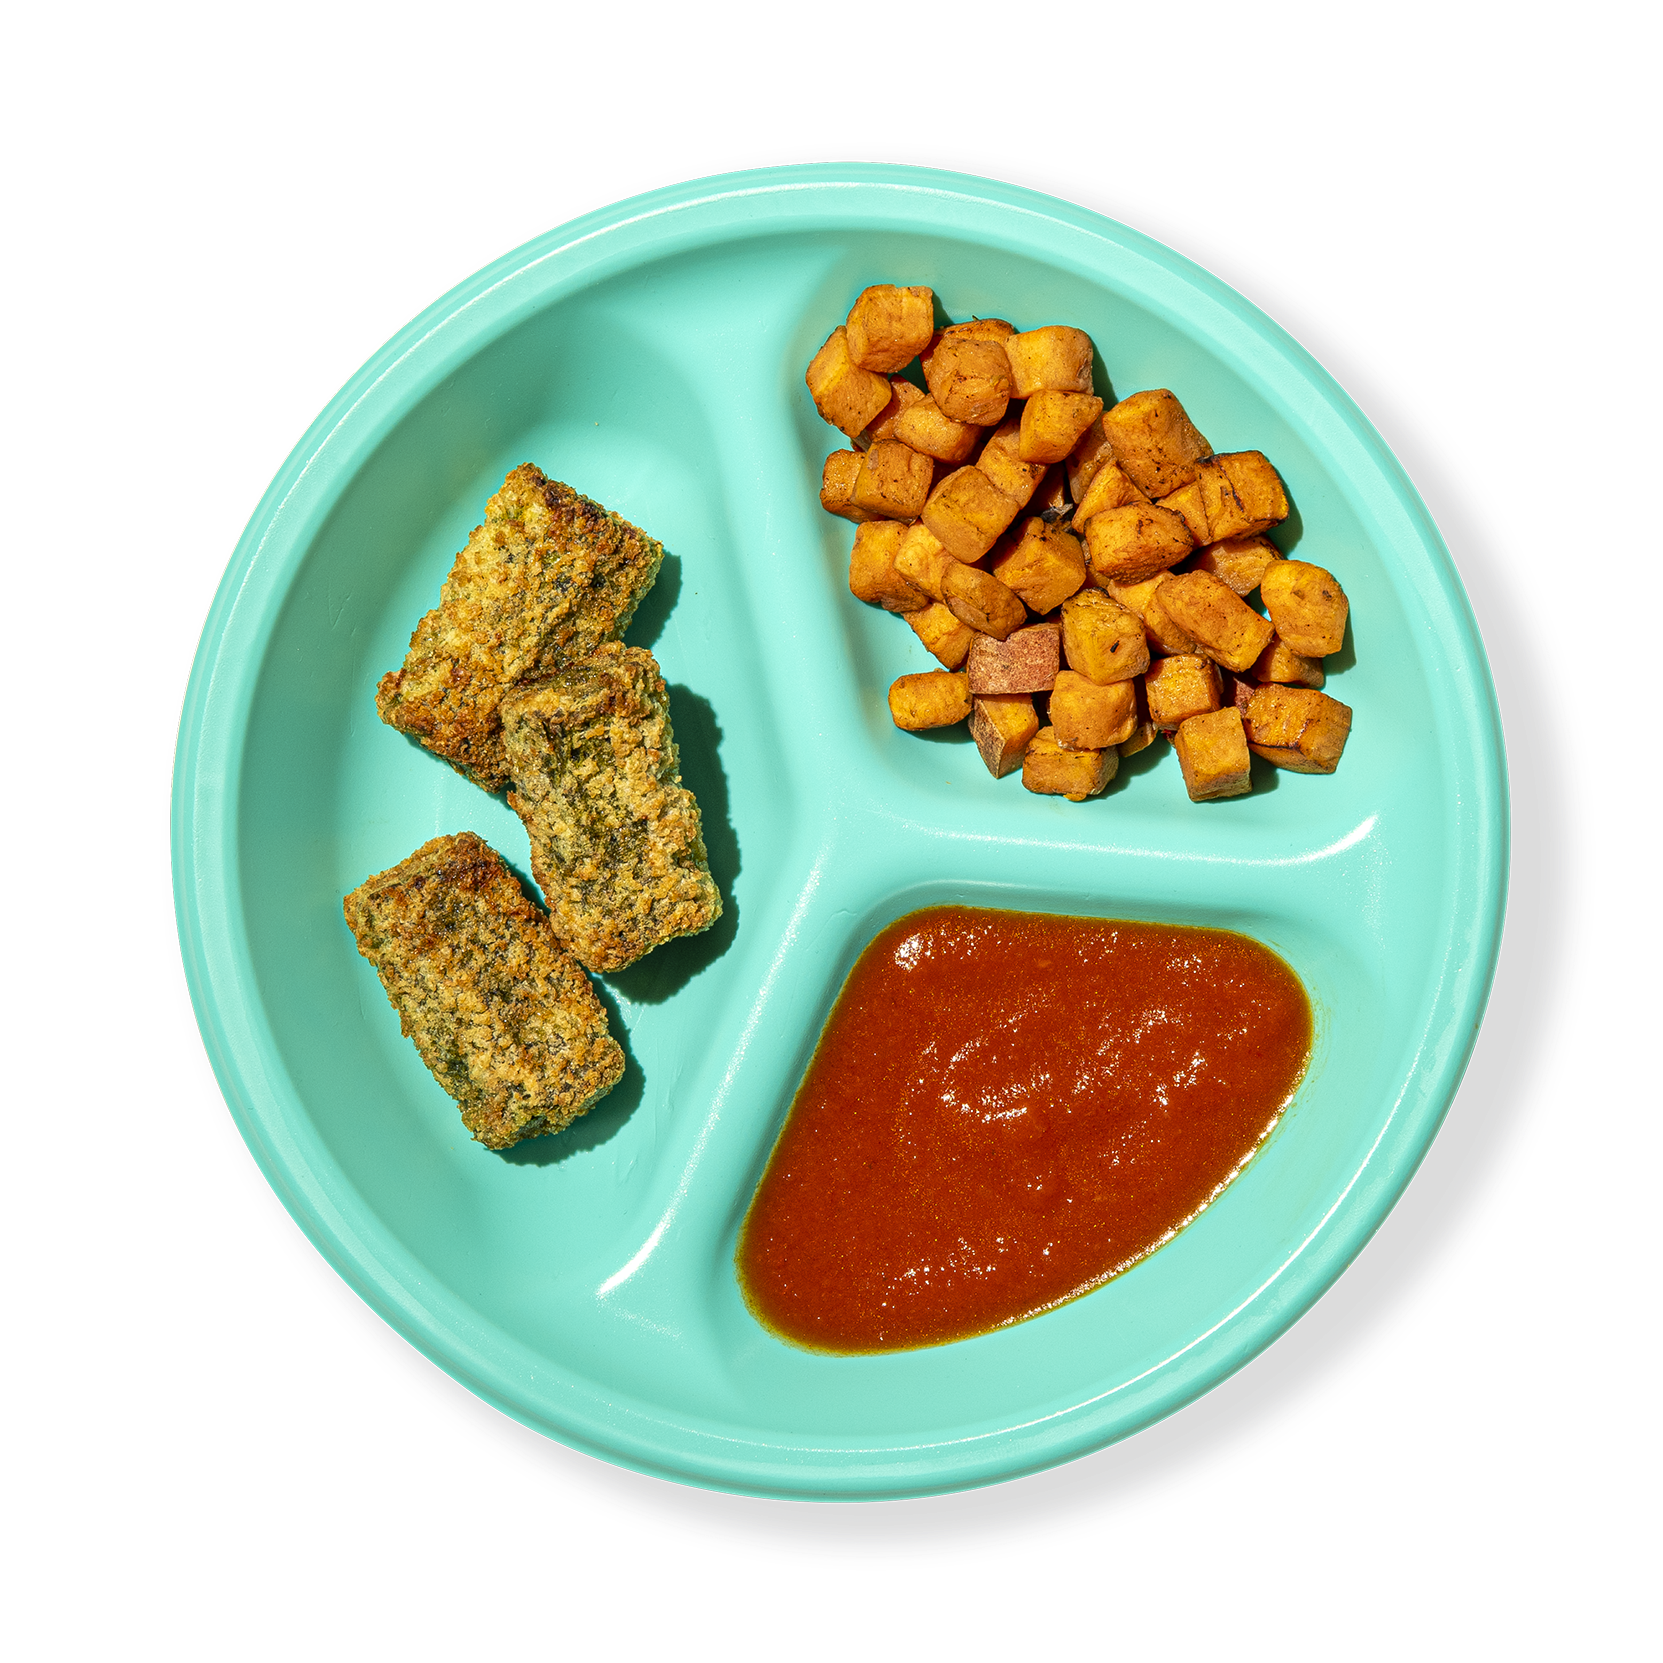 Plate of Spinach Chickpea Bites